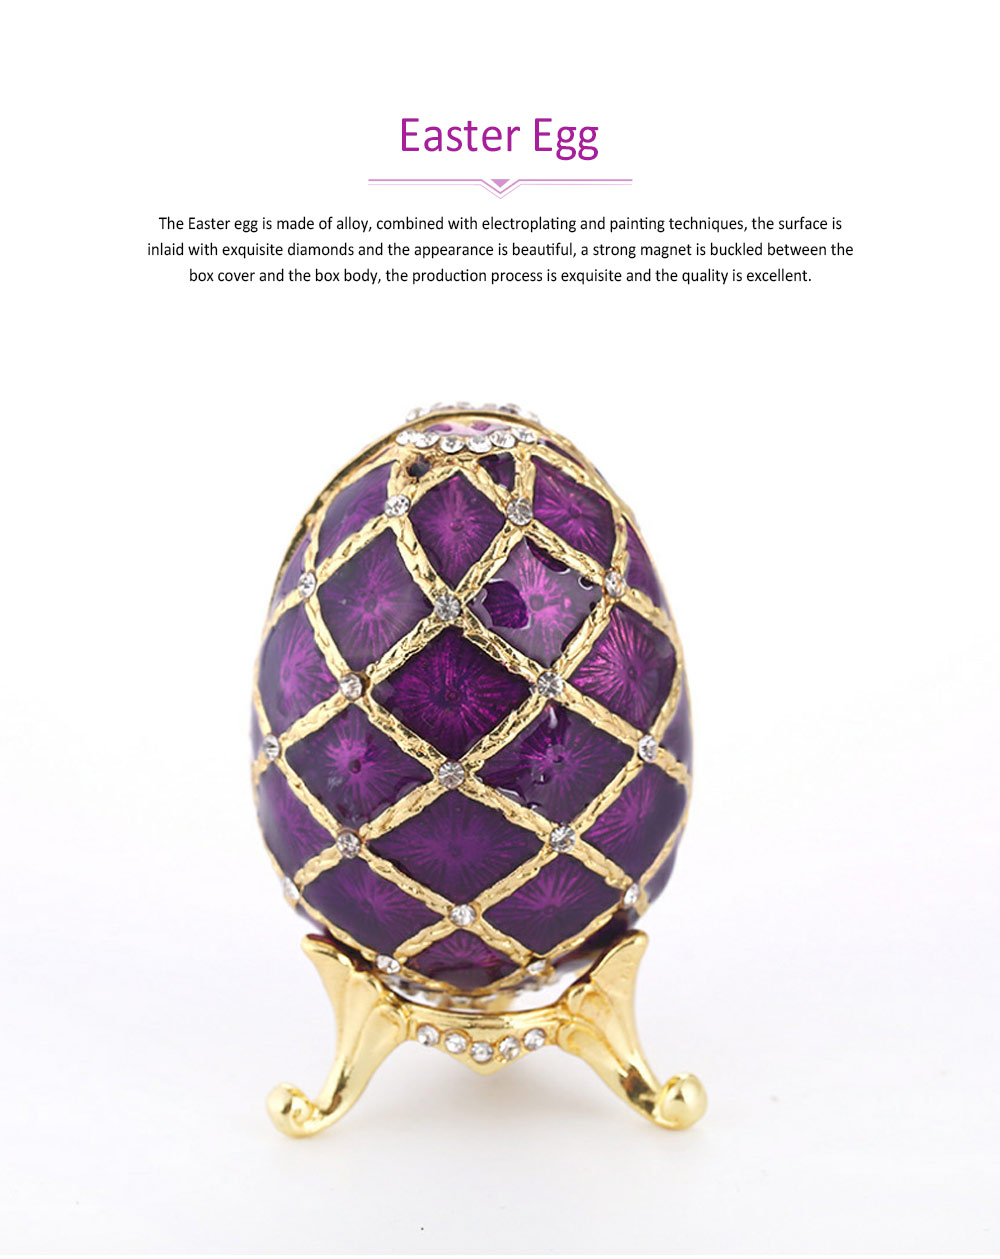 Painting Egg Jewelry Box Creativity Metal Handiwork Gold Plated Diamond Encrusted Decoration Easter Egg 0